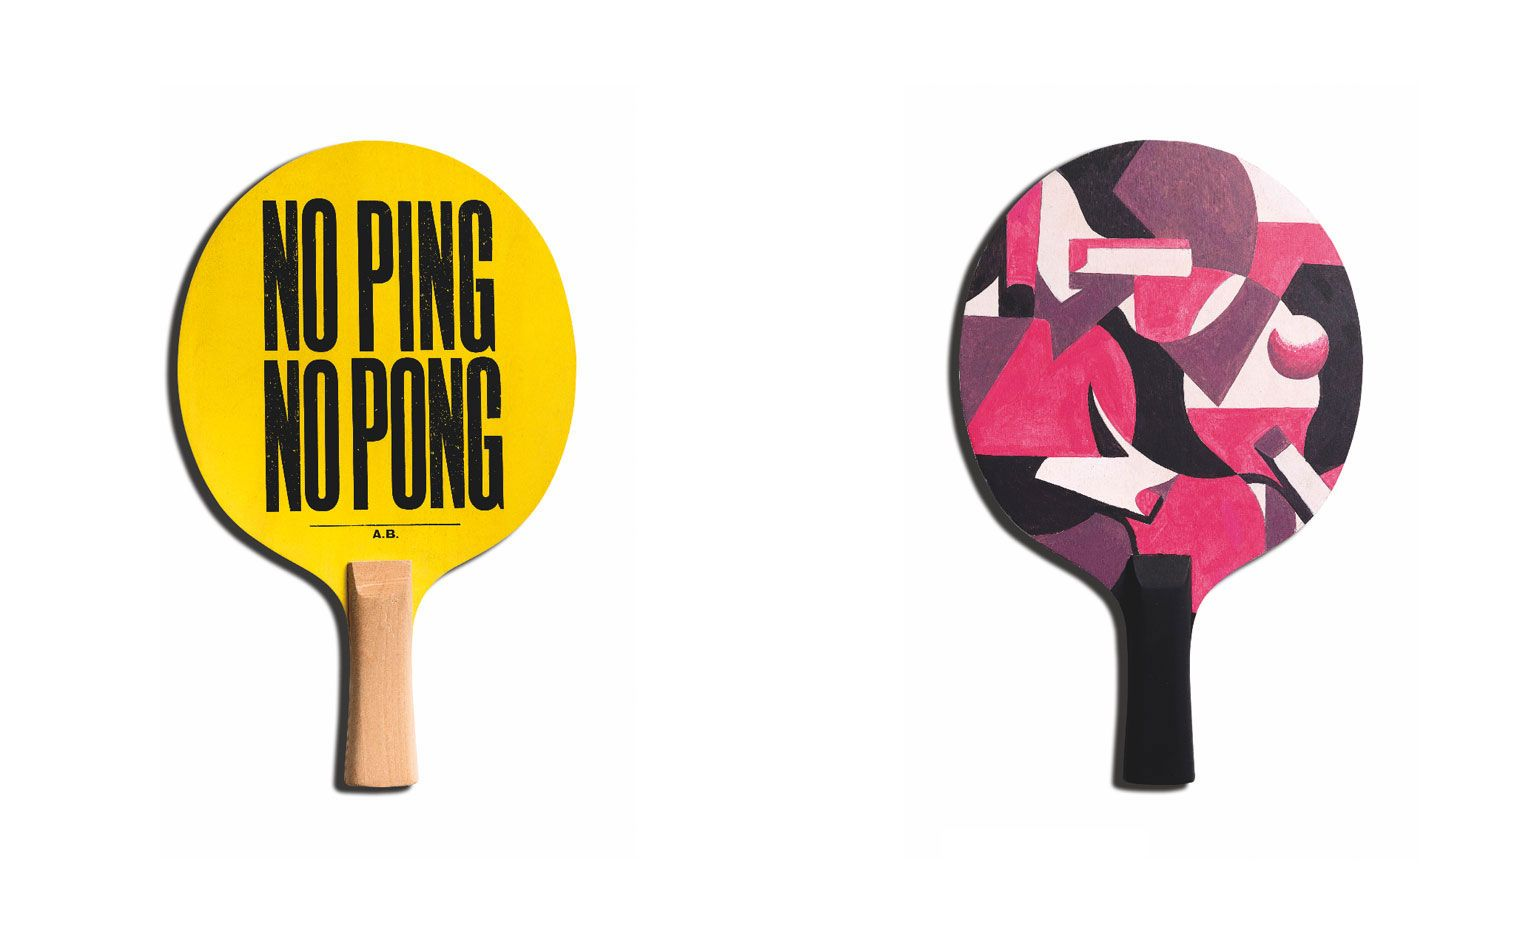 Paddle Masters Artist Designed Ping Pong Bats On Show At Kk Outlet Gallery Ping Pong Gallery Design Pong